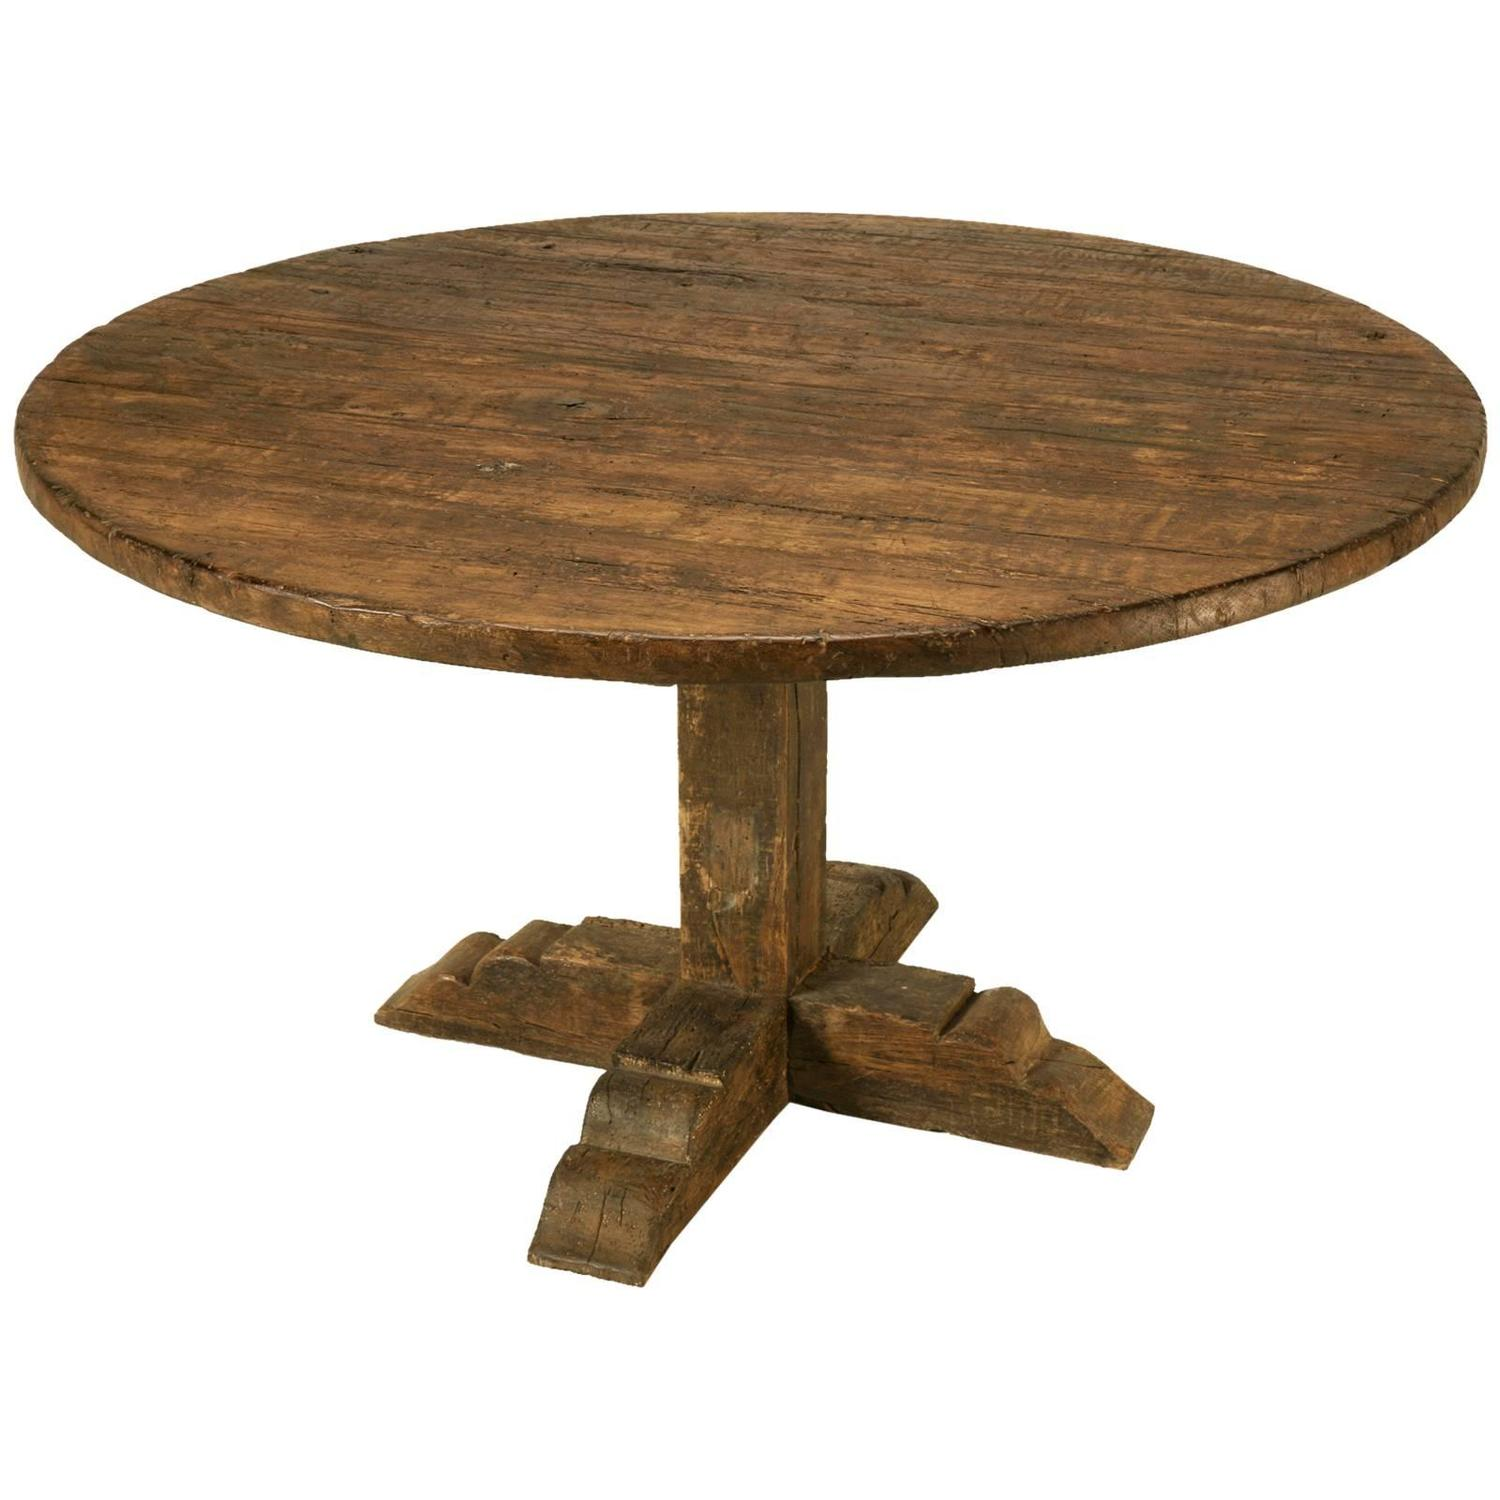 italian round dining table for sale at 1stdibs